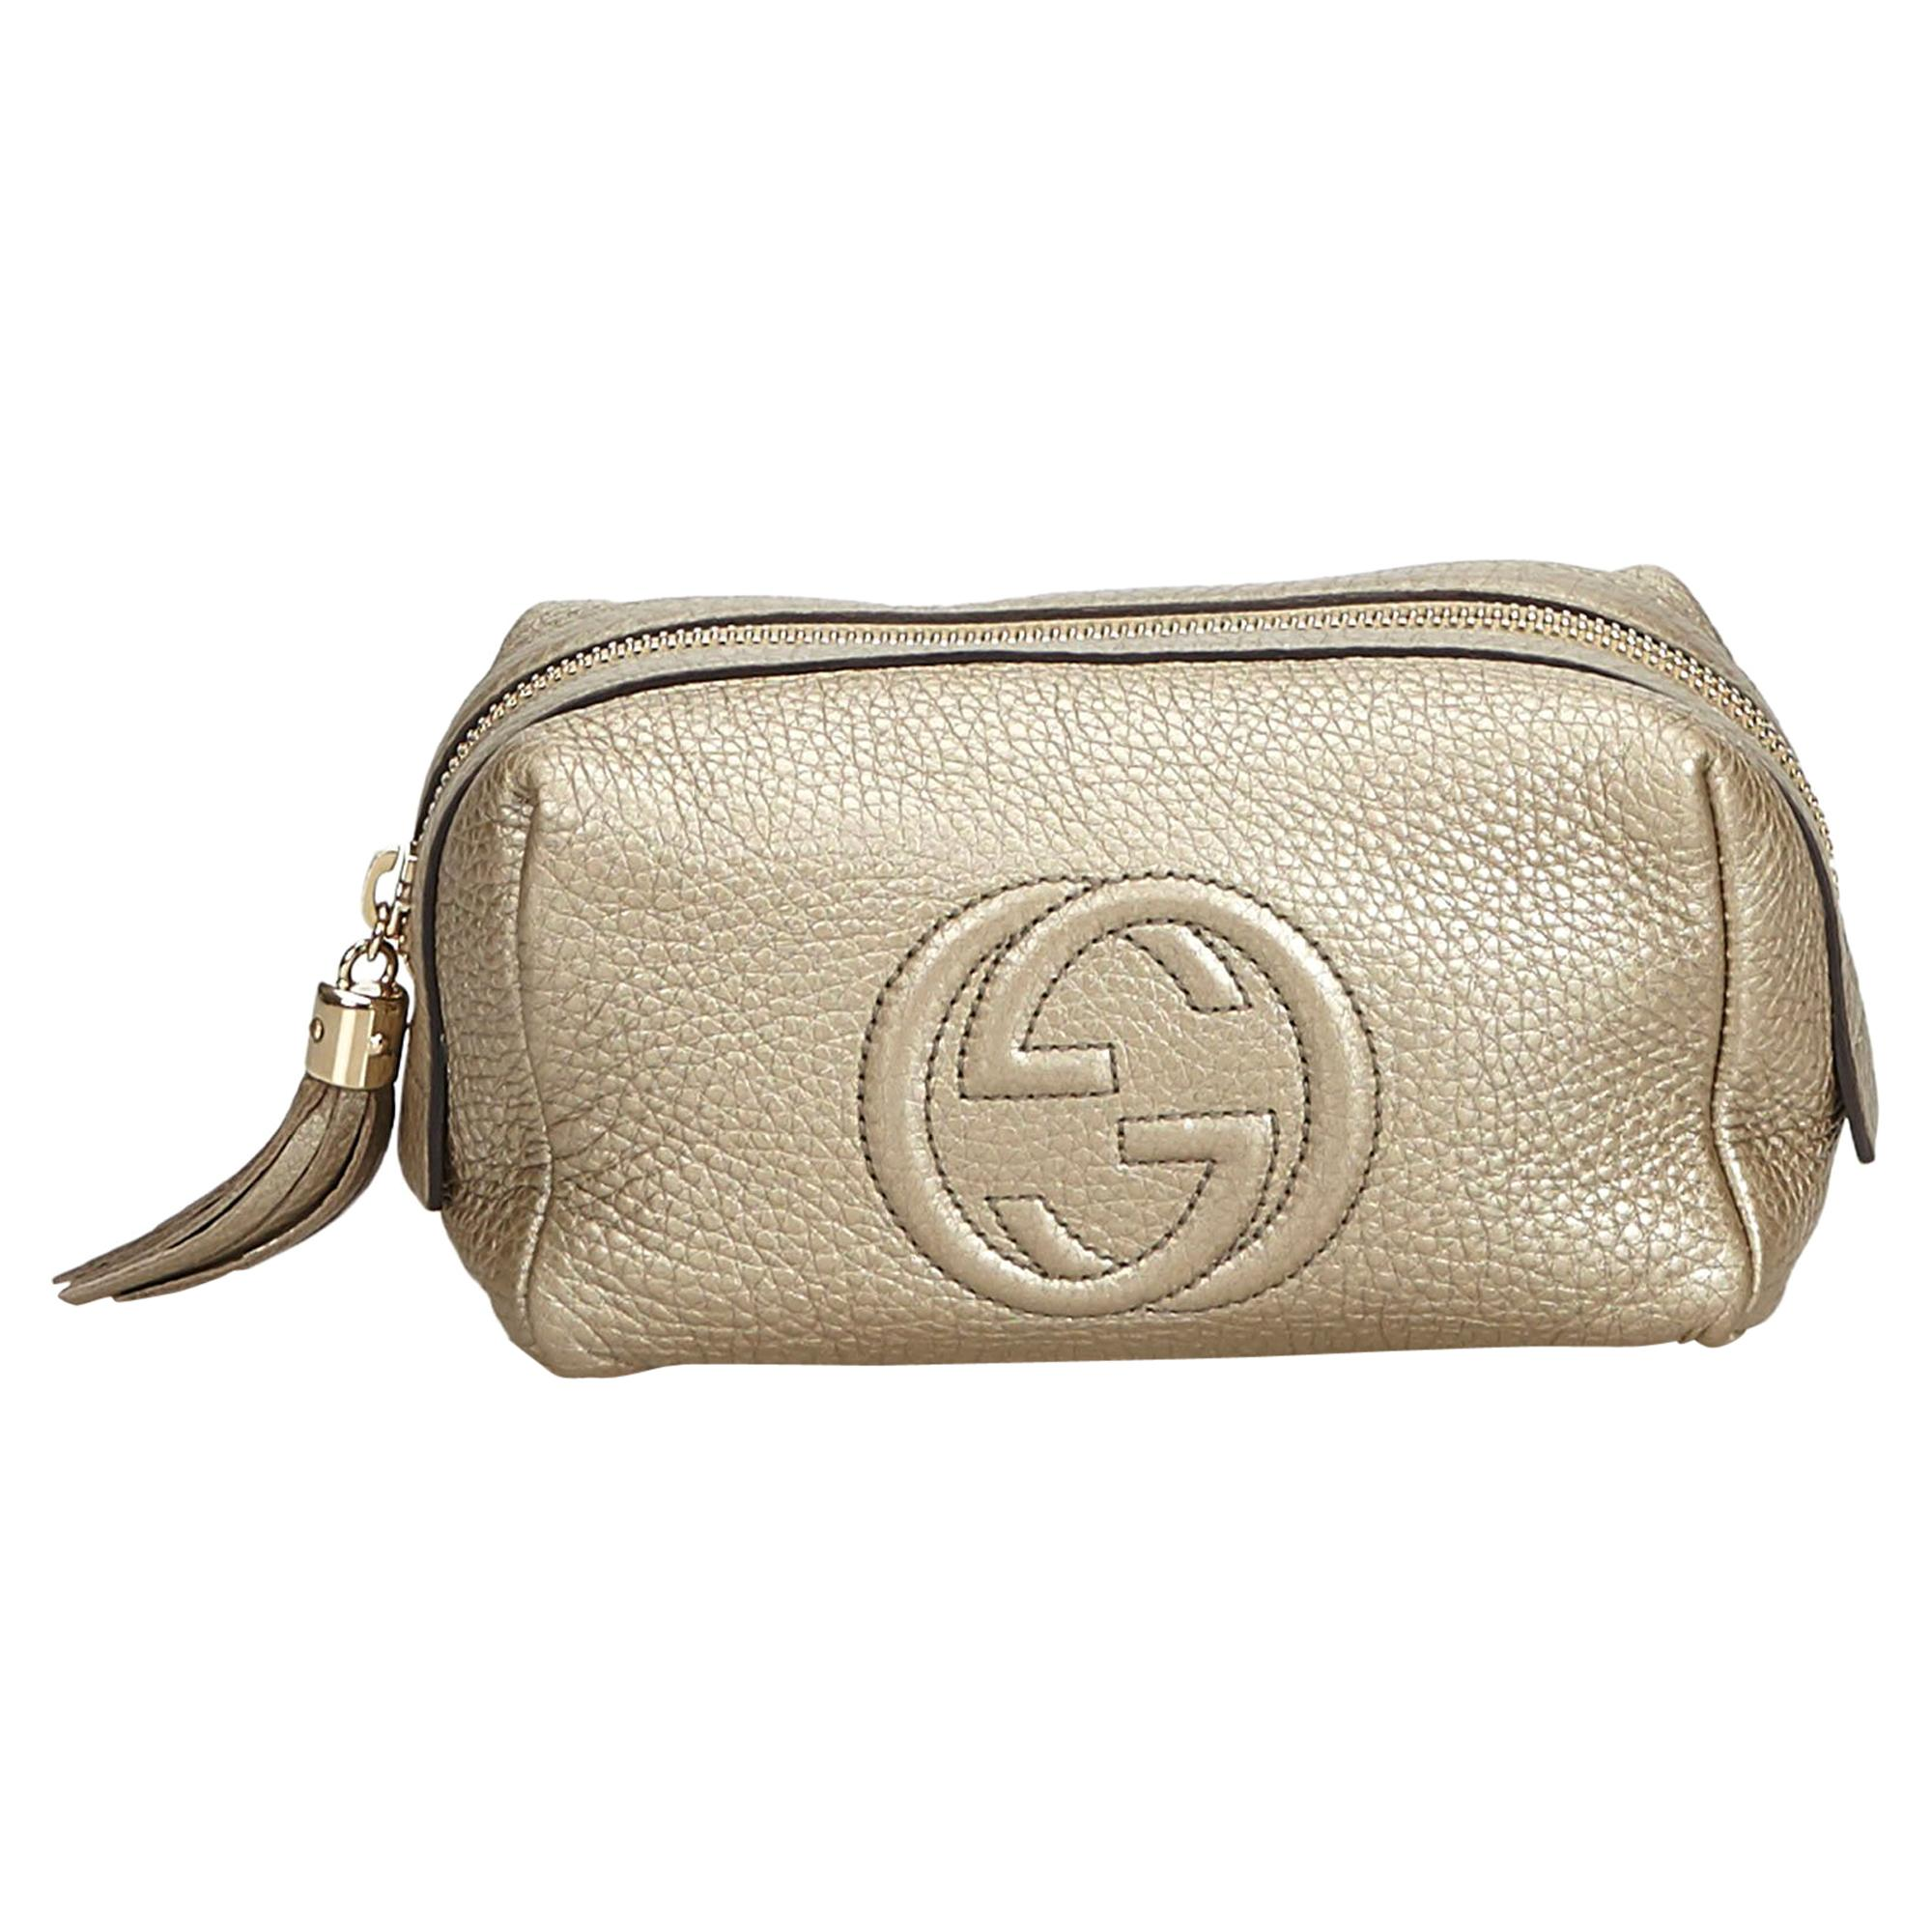 db6c7976ef76 Vintage Gucci Handbags and Purses - 2,039 For Sale at 1stdibs - Page 4